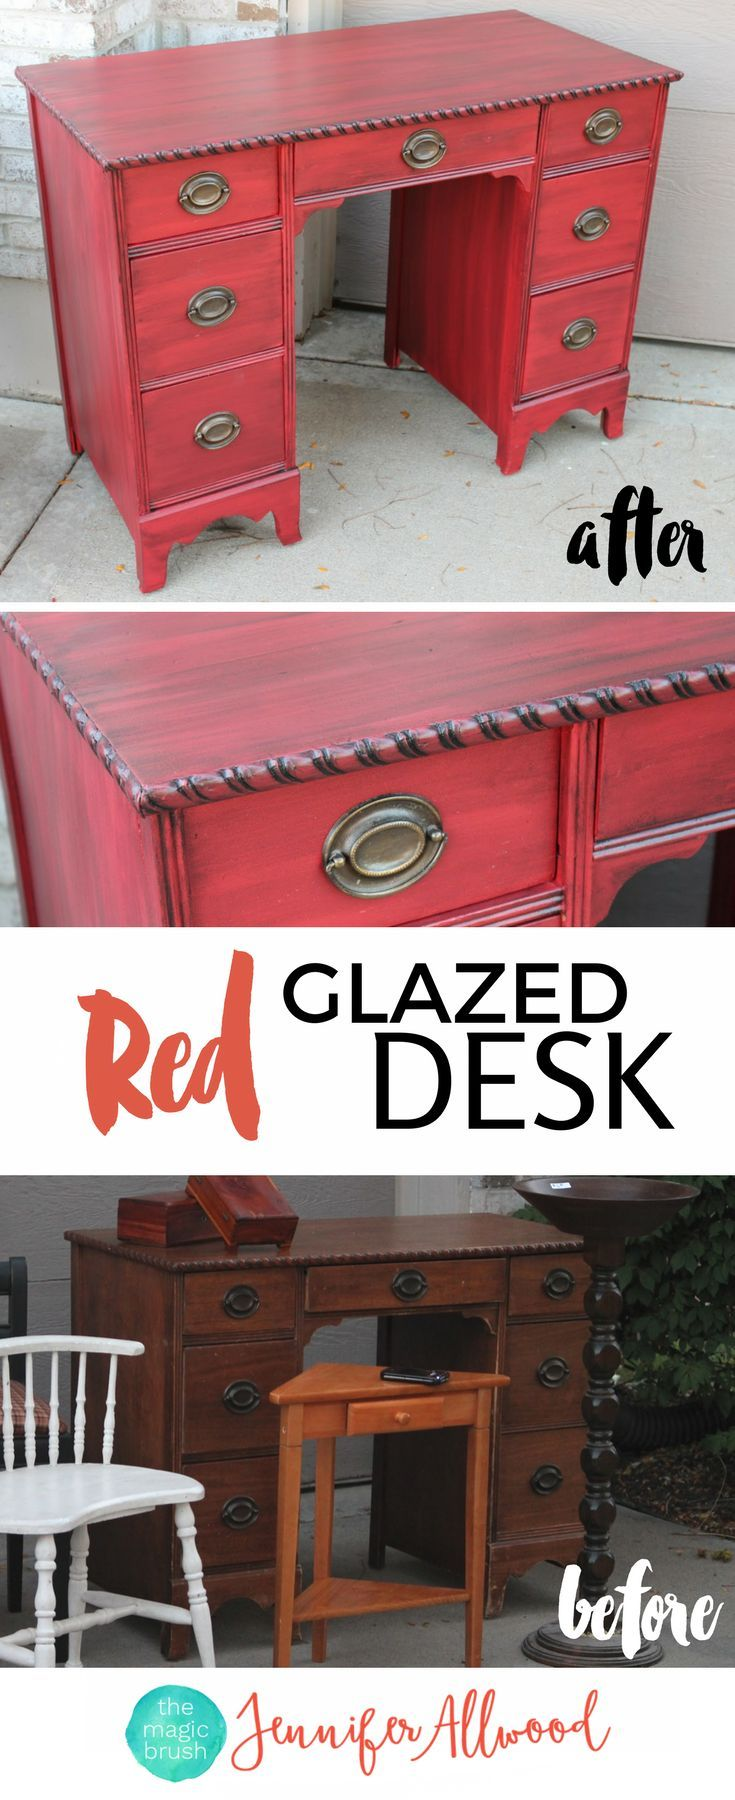 Red Glazed Desk Makeover By Jennifer Allwood How To Paint Furnitiure Painted Furniture